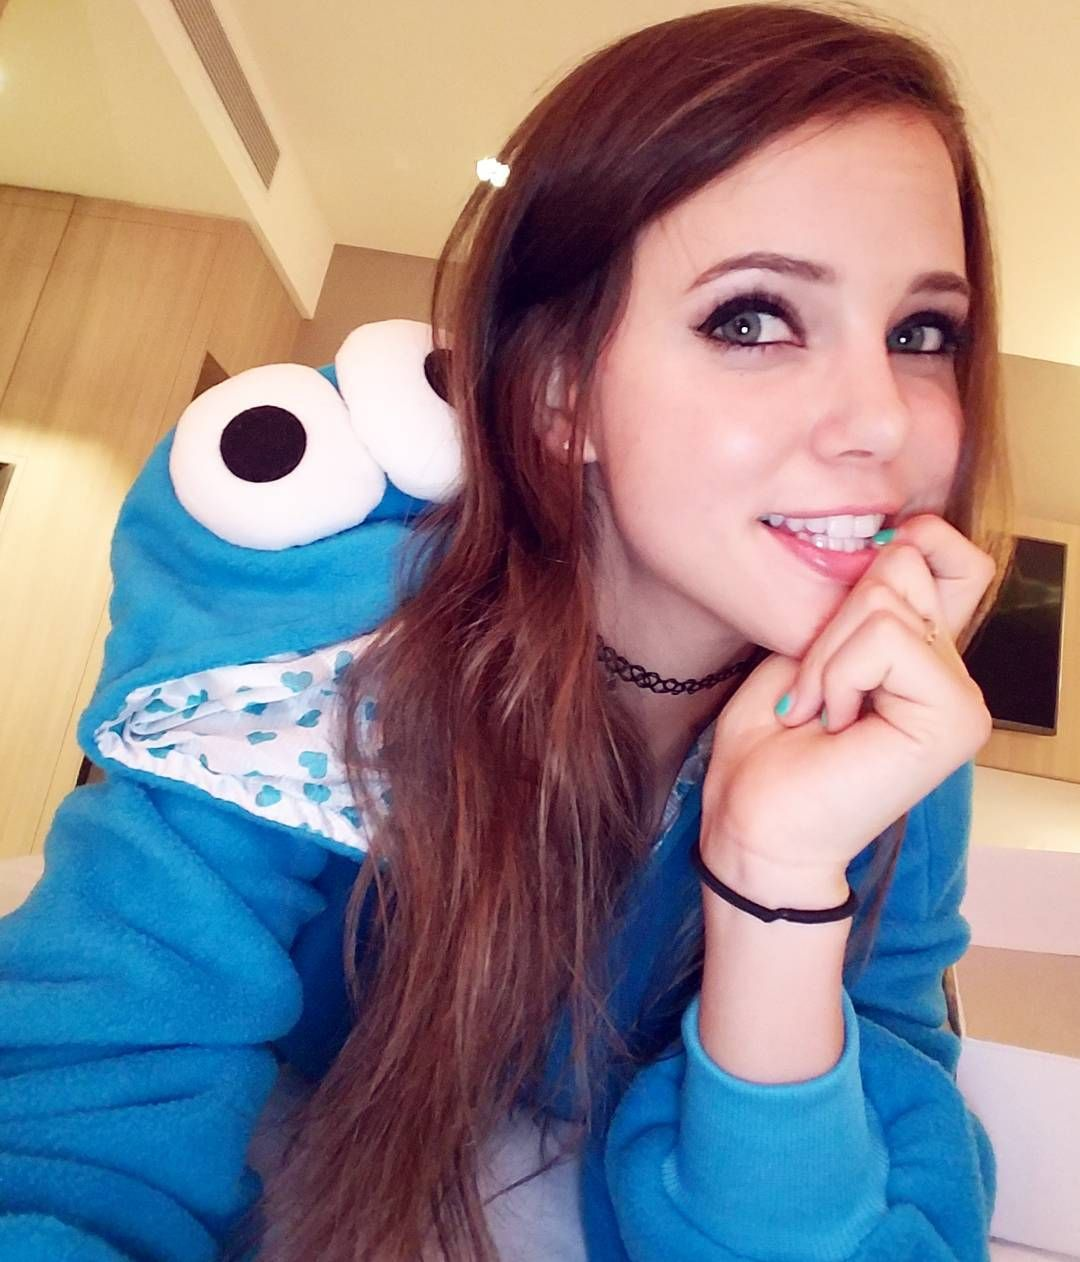 Selfie Tiffany Alvord nudes (36 foto and video), Topless, Fappening, Twitter, lingerie 2017